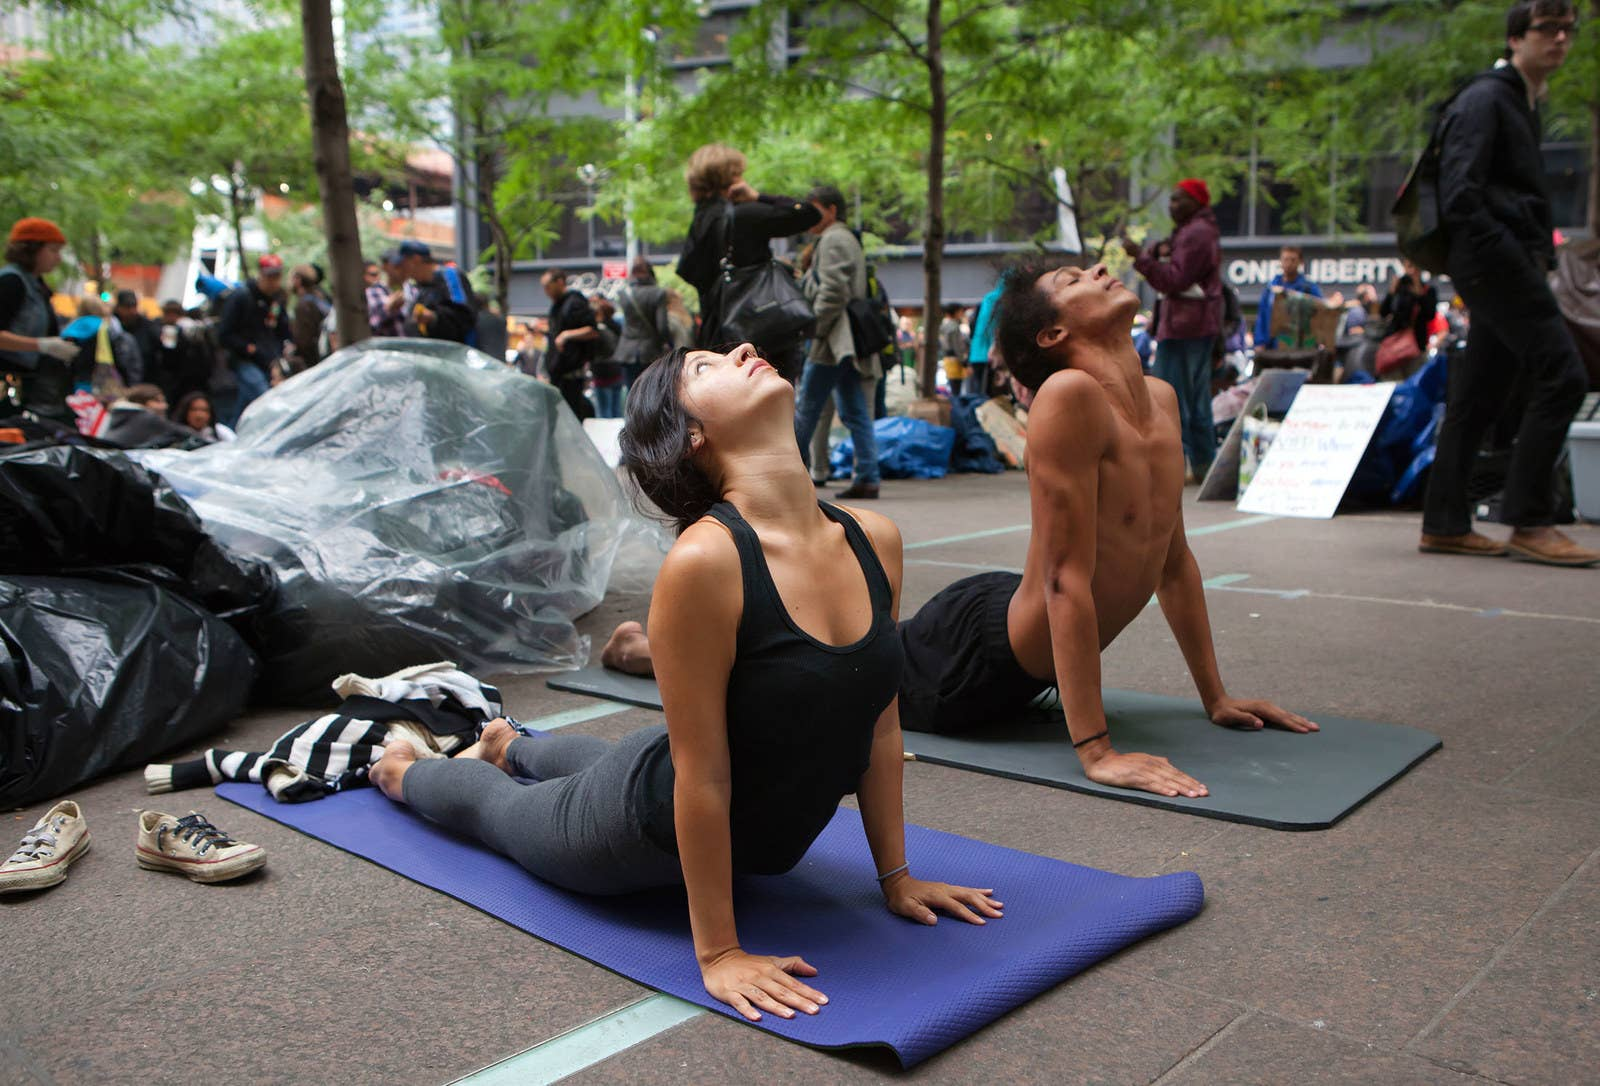 Jamie Pumello and Elijah Moses practice yoga in Zuccotti Park on Oct. 3, 2011.